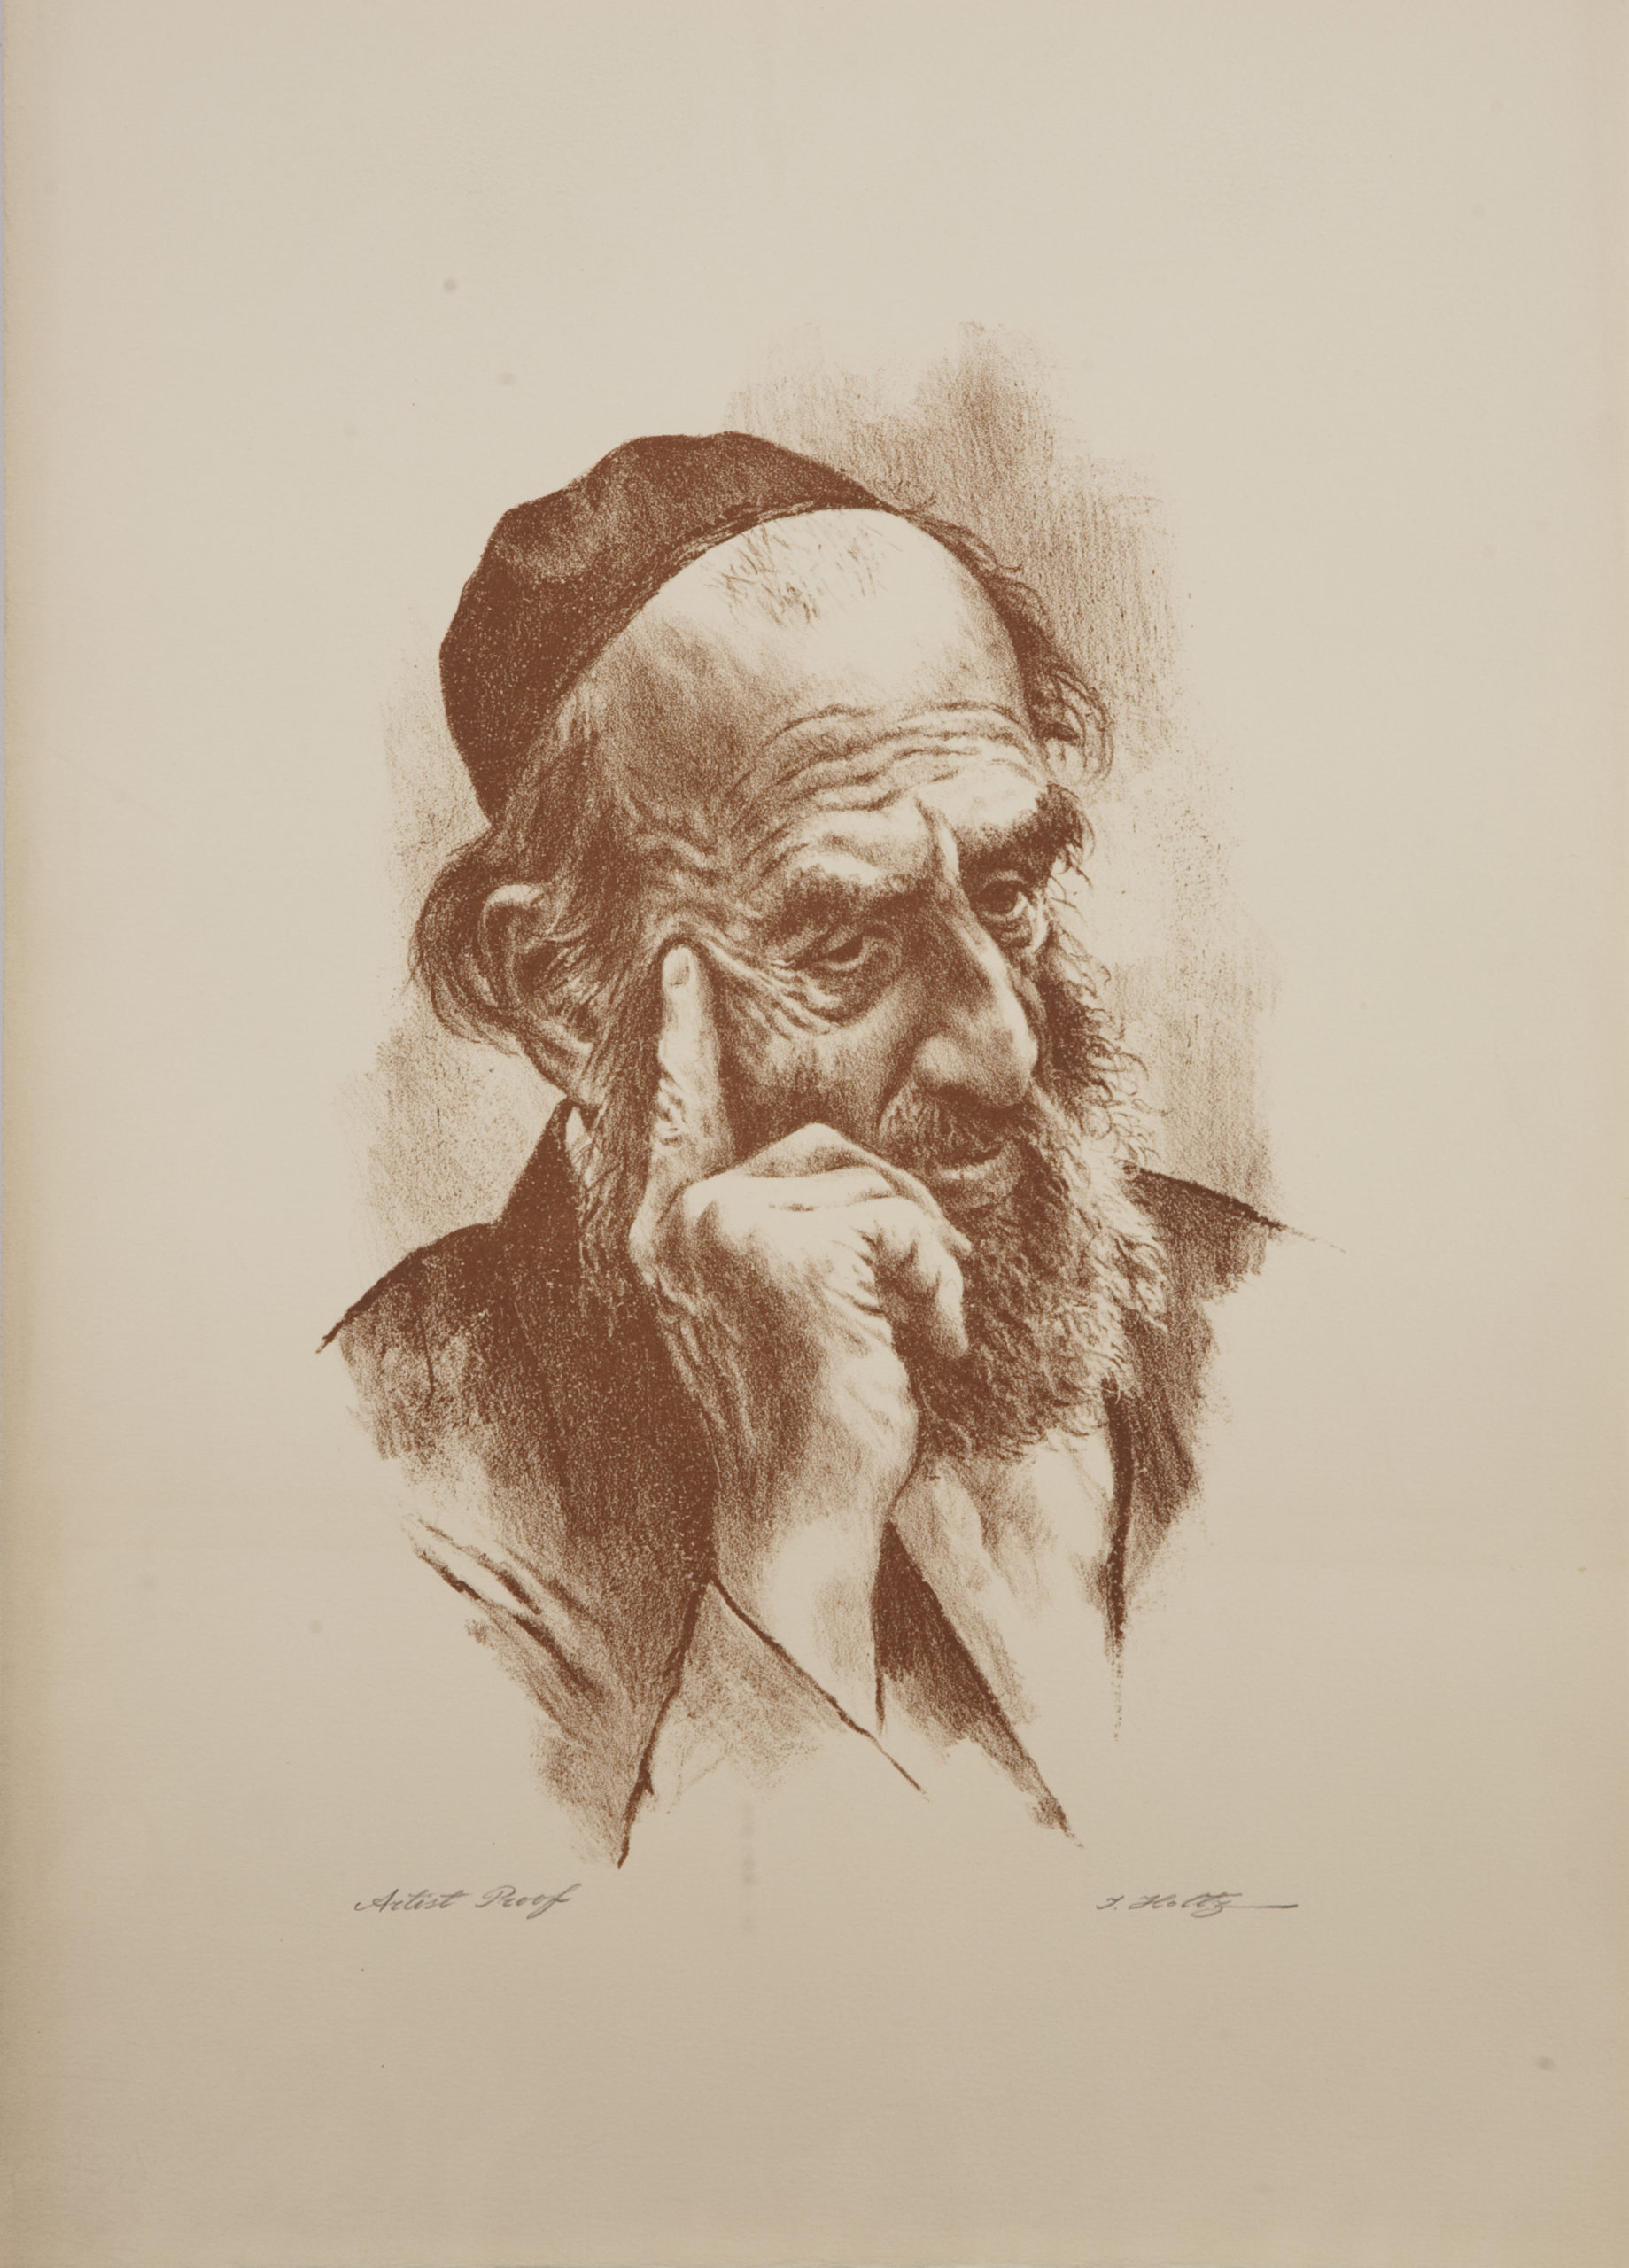 L33S Thinker Right Hand - Sepia - Lithograph - 15 x 21 - No Frame - $340